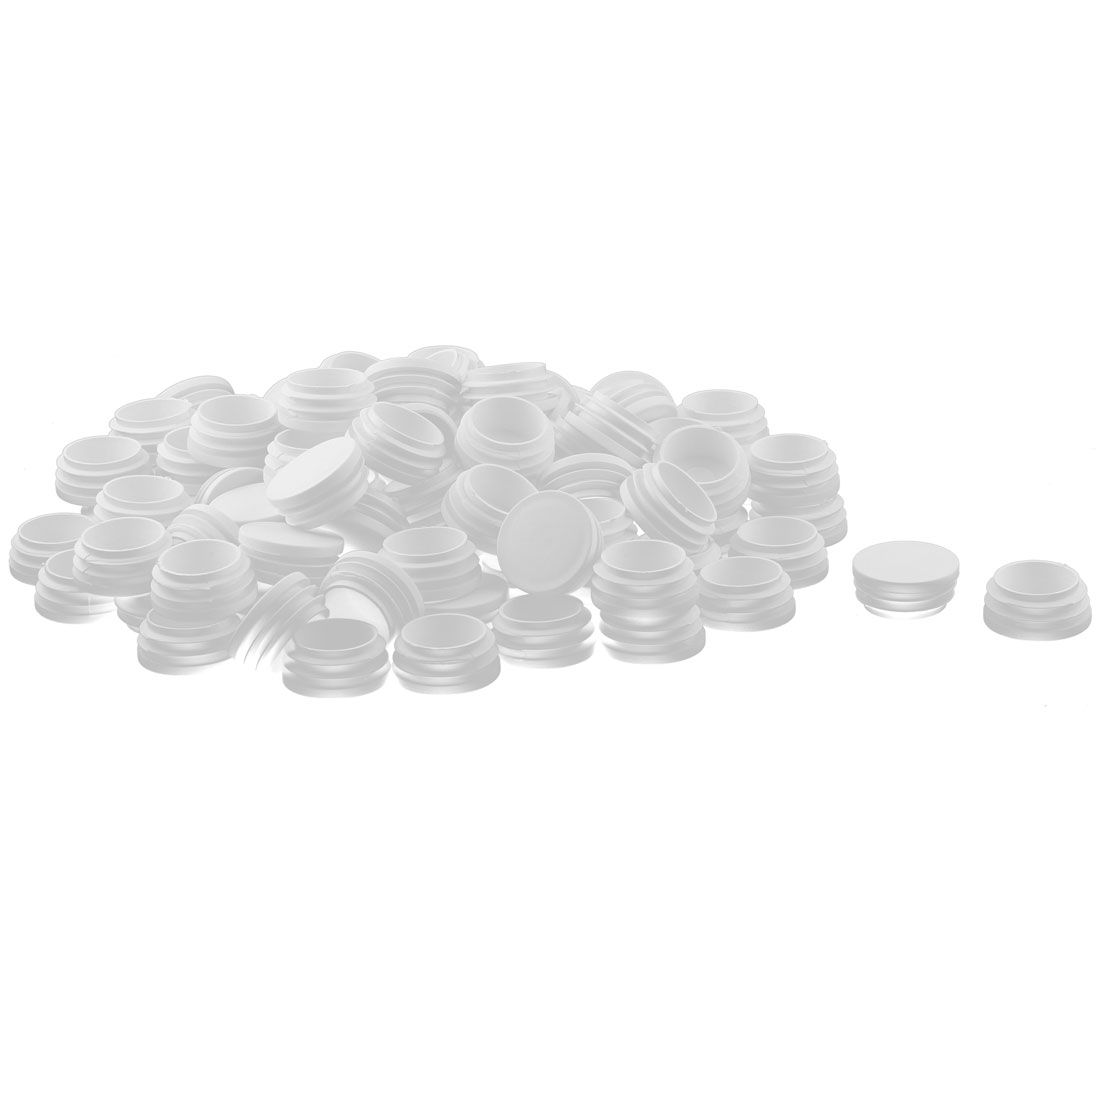 Home Plastic Round Shaped Furniture Table Chair Feet Tube Inserts White 38mm Dia 100 Pcs